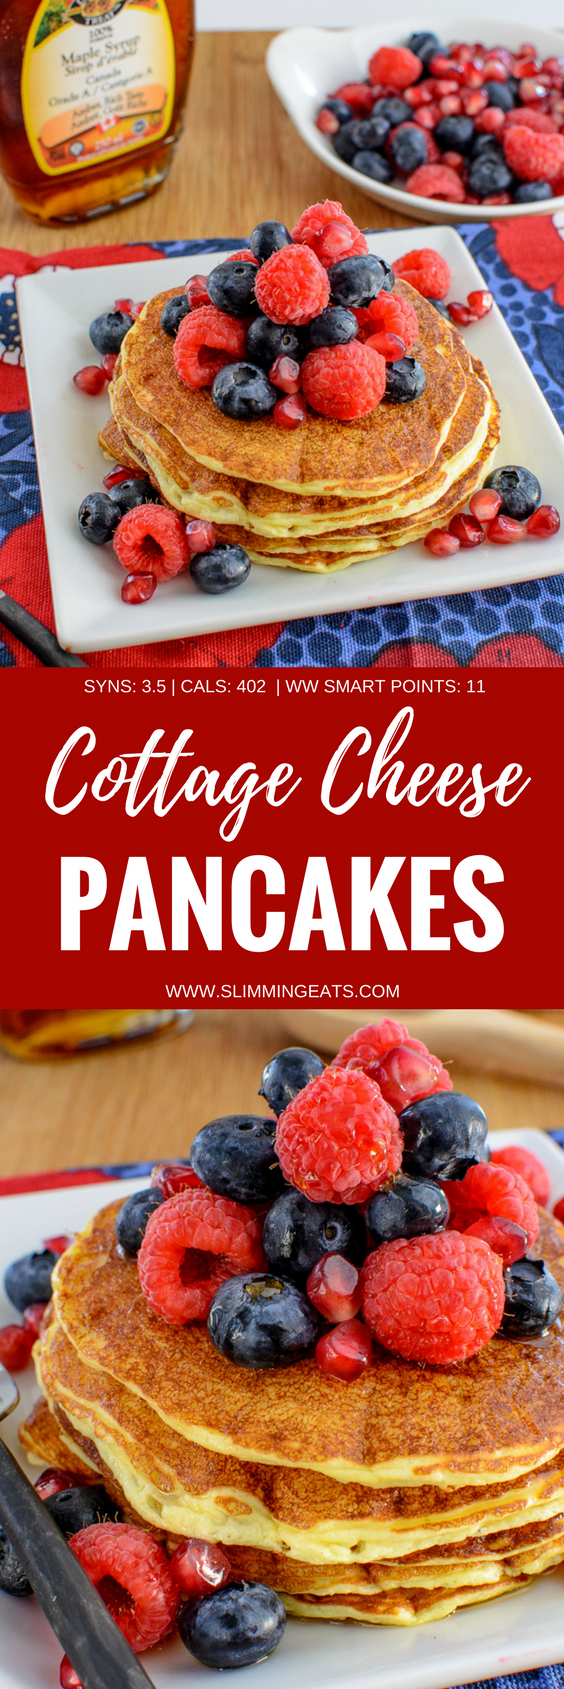 Delicious Cottage Cheese Pancakes - no healthy extras need for these. So perfect to enjoy any time of day. Gluten Free, Vegetarian, Slimming World and Weight Watchers friendly.  SYNS: 2.5 | CALORIES: 282 | WEIGHT WATCHERS SMART POINTS: 3 | www.slimmingeats.com